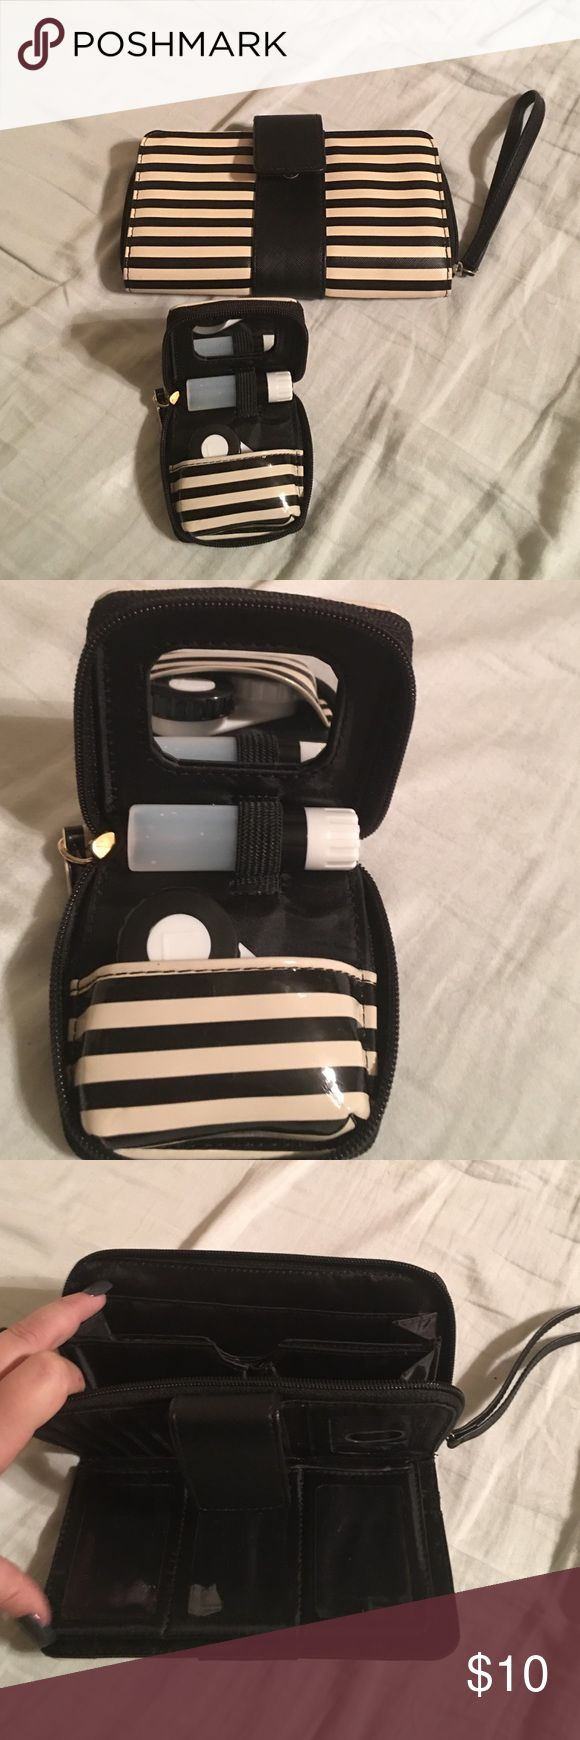 Matching wallet and contact lens case Cute, brand new, matching wristlet wallet and contact lens travel case Bags Wallets